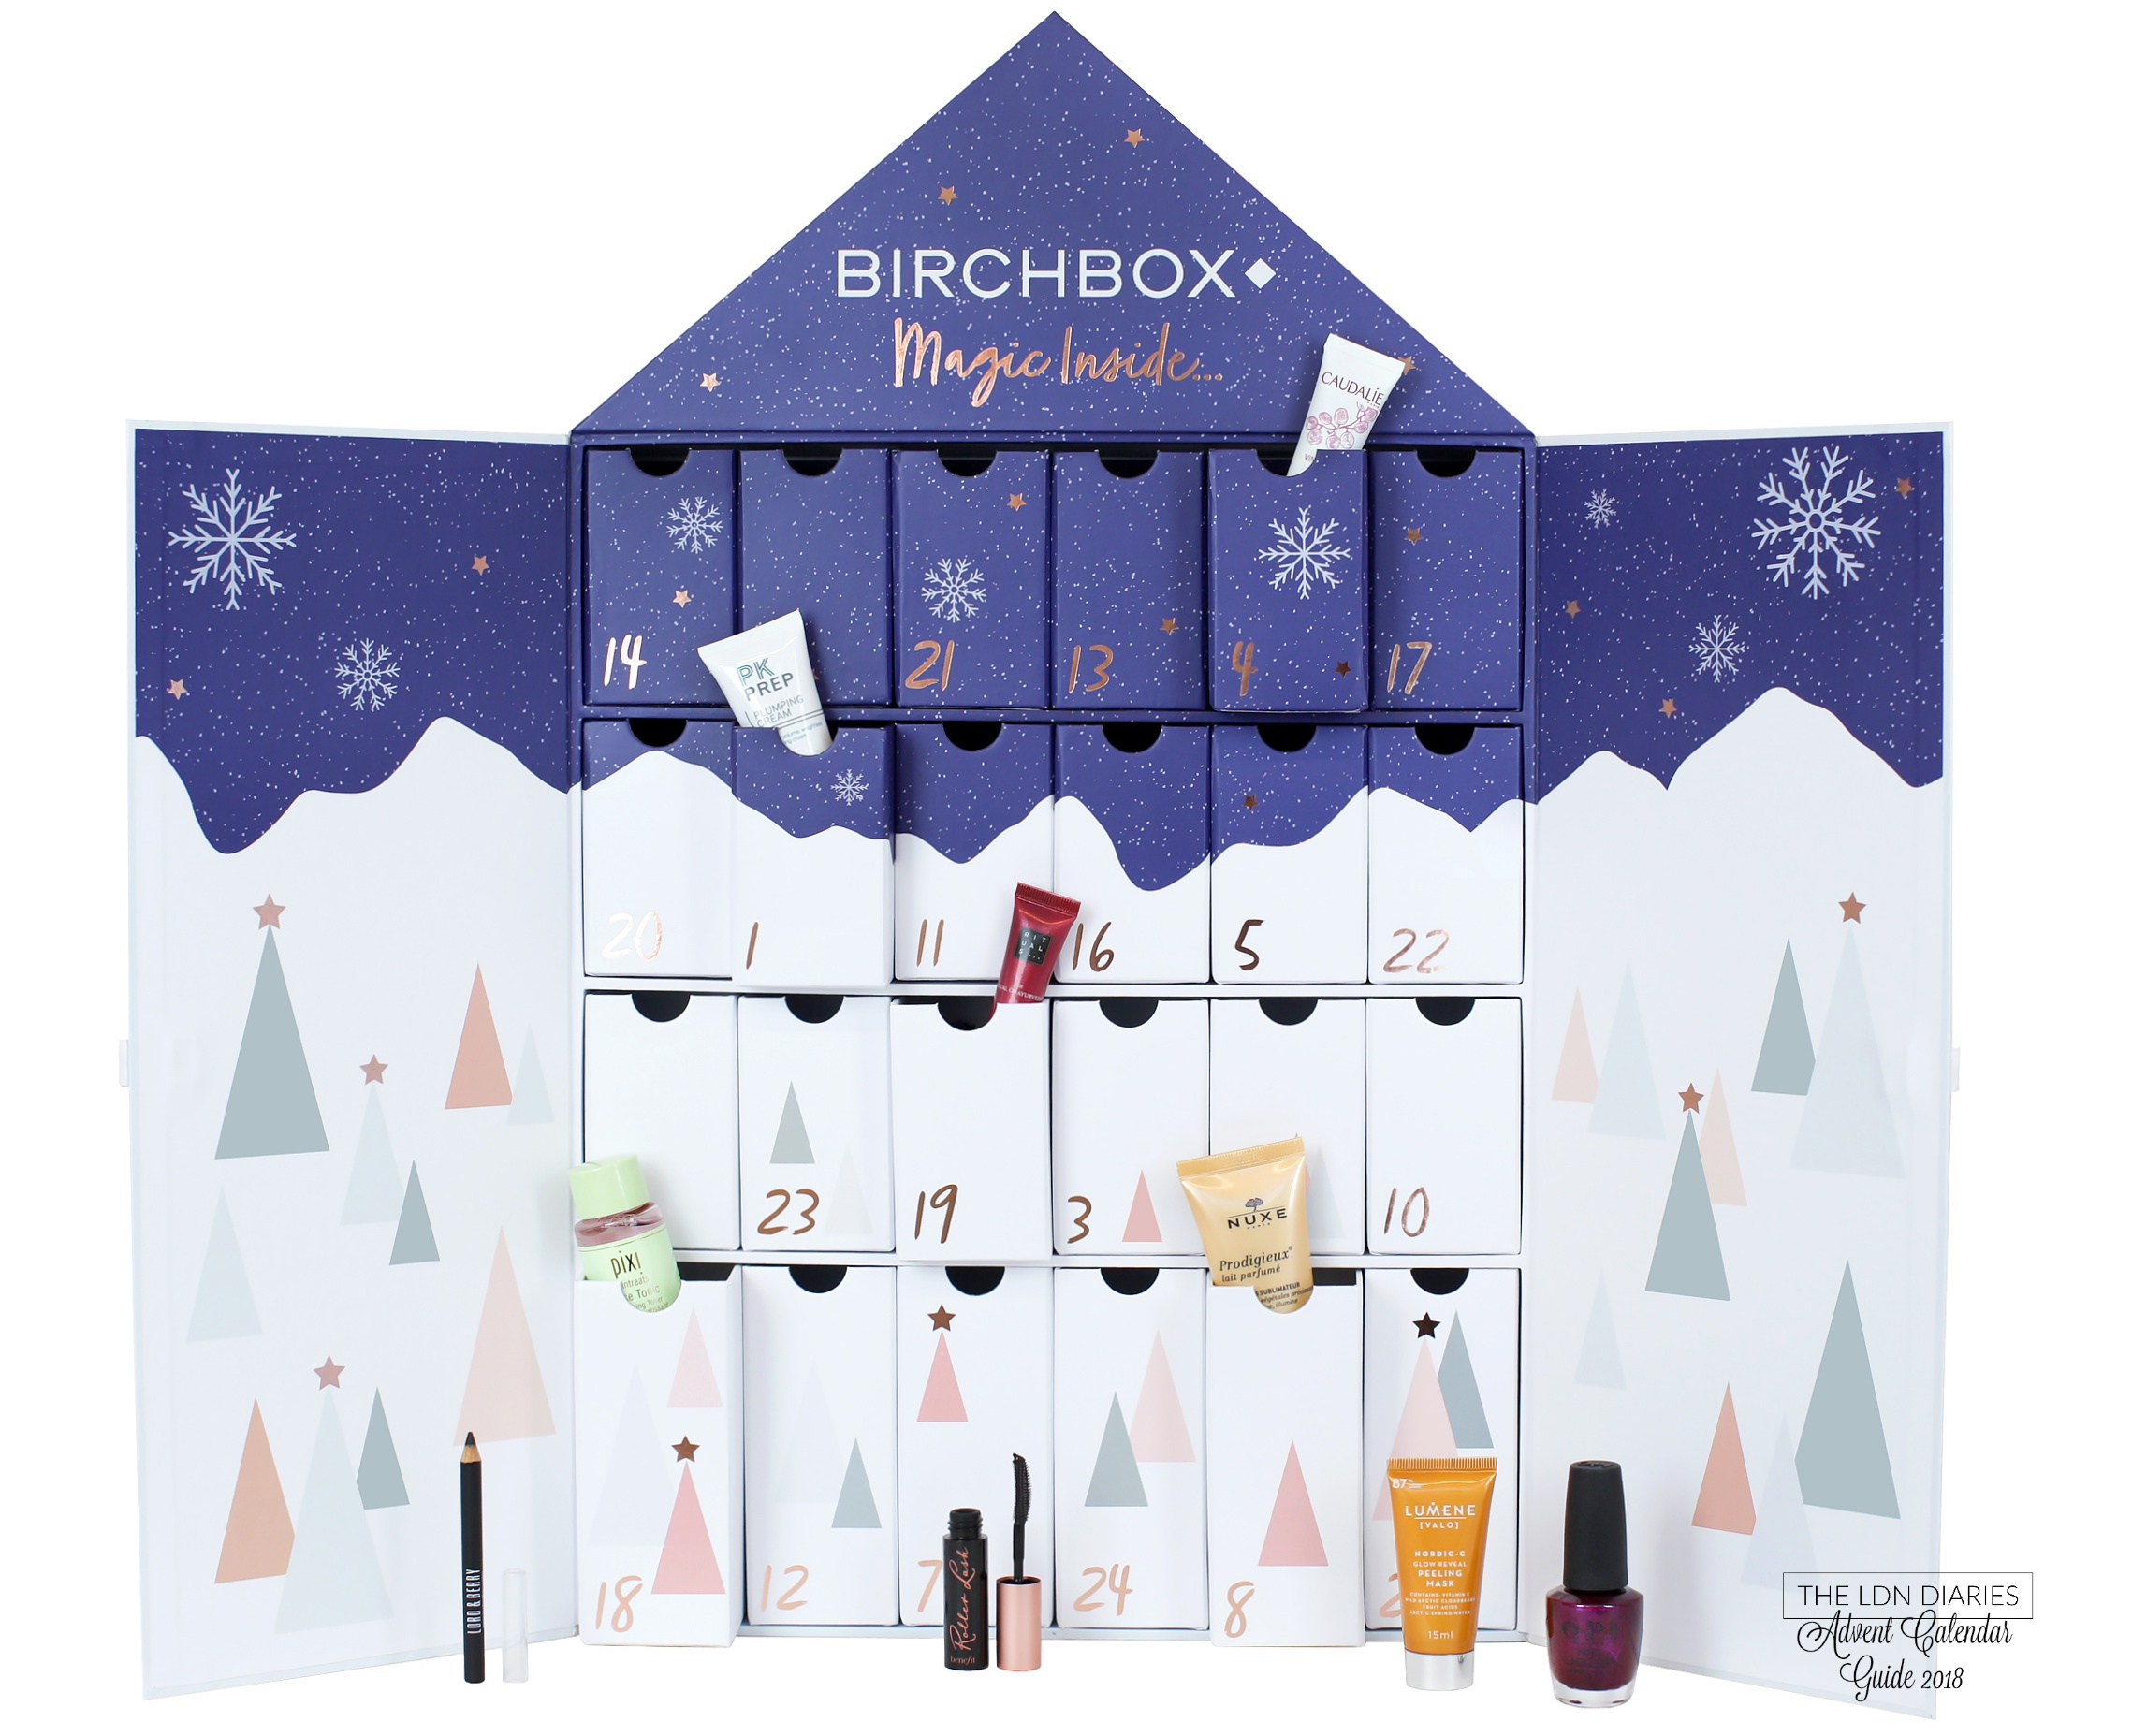 Birchbox Beauty Advent Calendar 2018 - The LDN Diaries